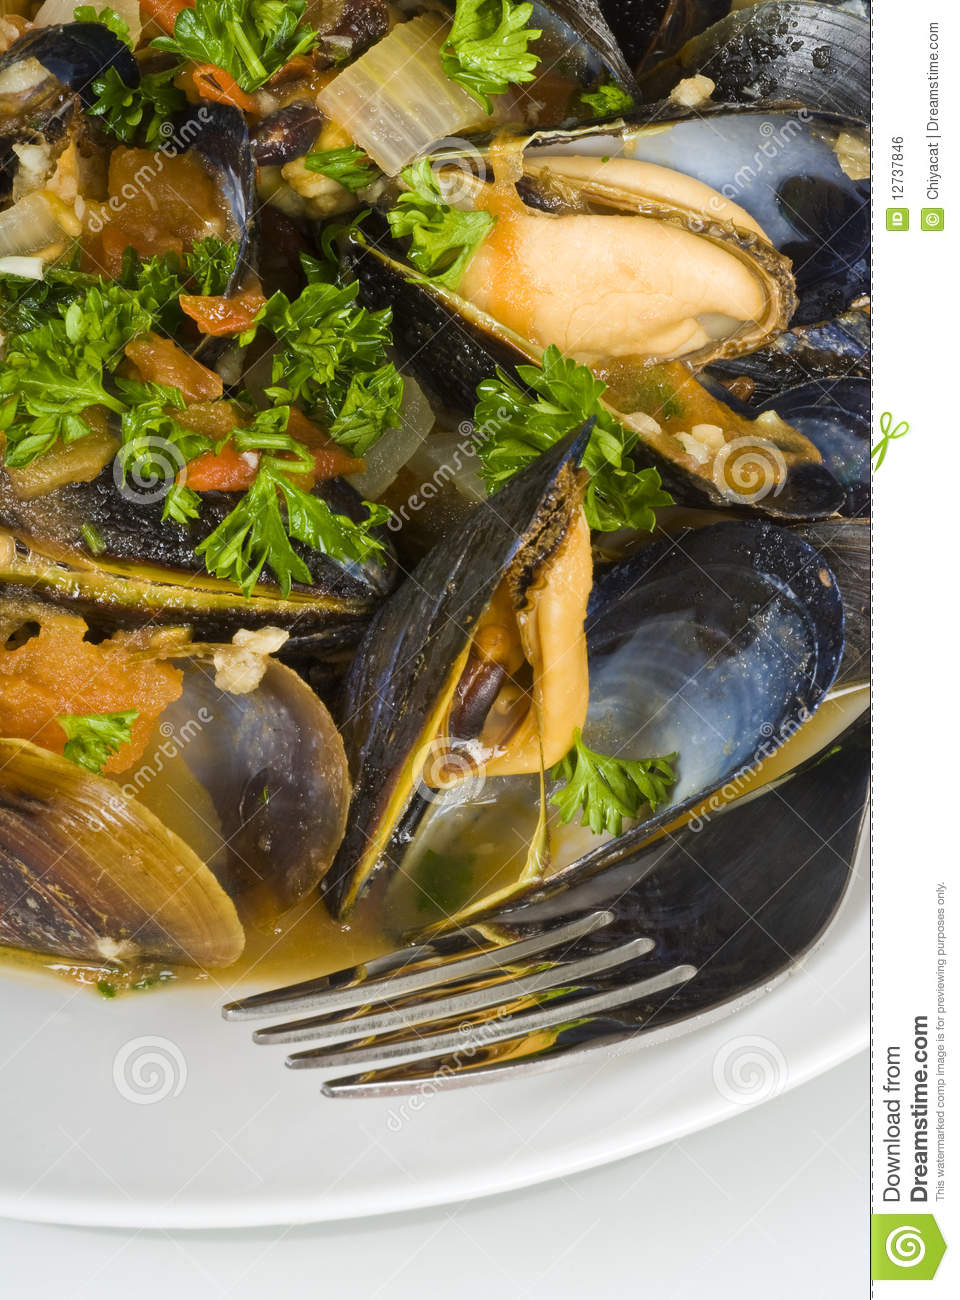 Steamed Mussels In Tomato And Garlic Broth Royalty Free Stock Image ...